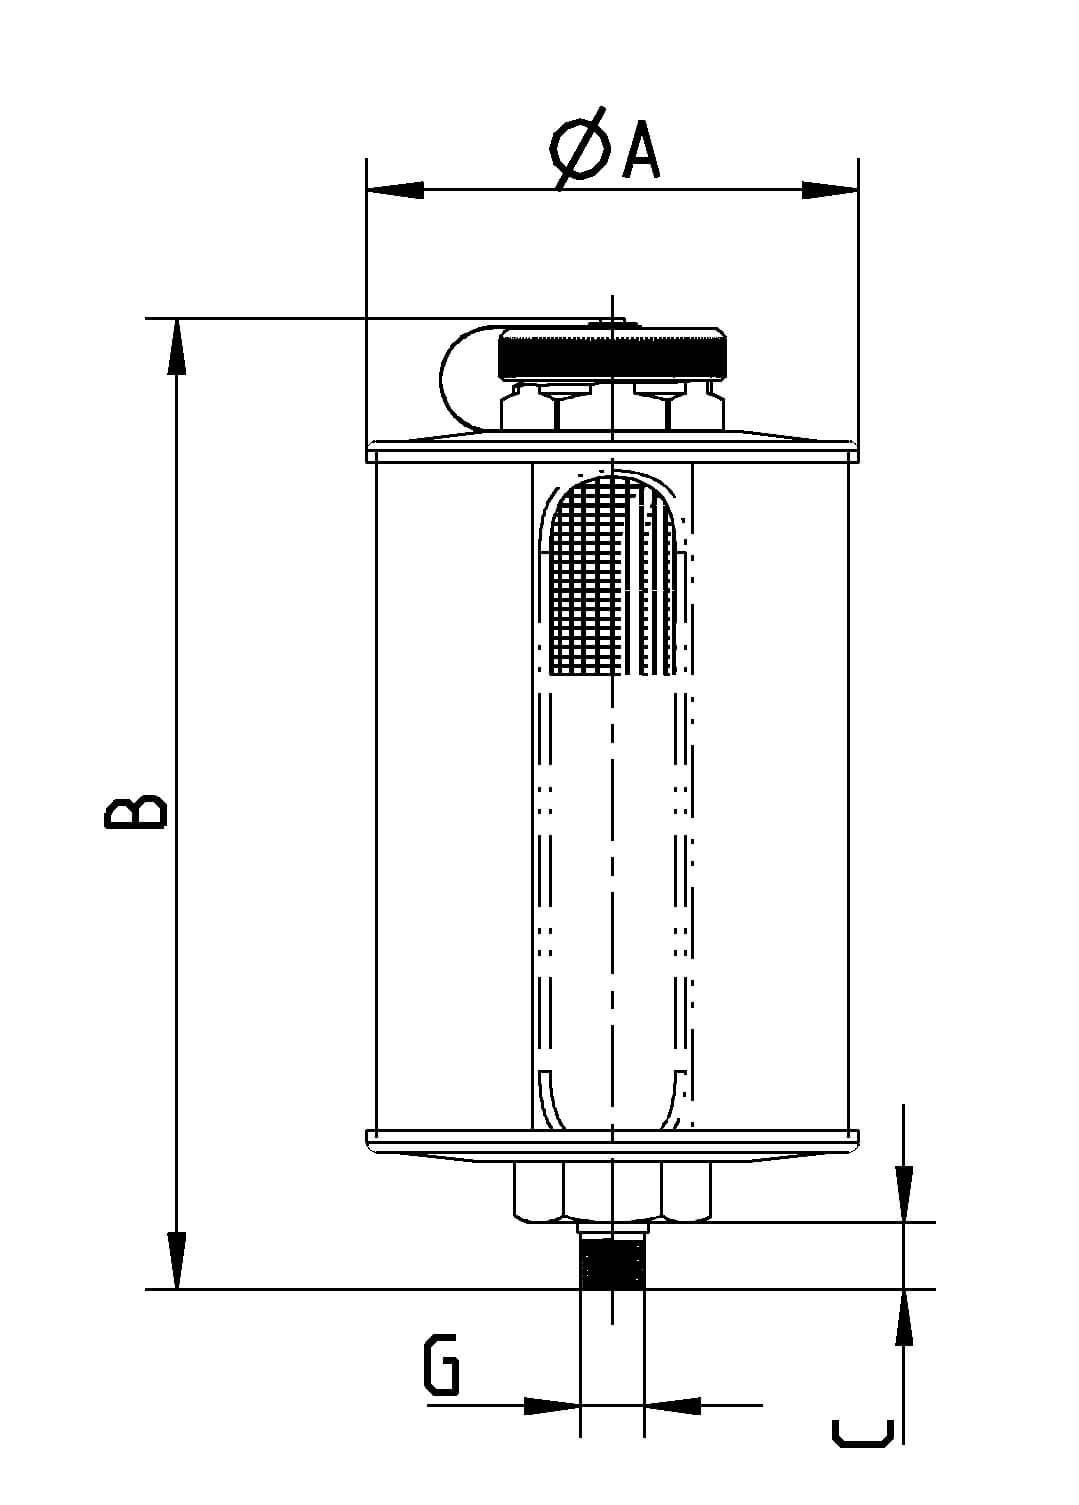 Oil reservoir TopTank, the industrial Olitank